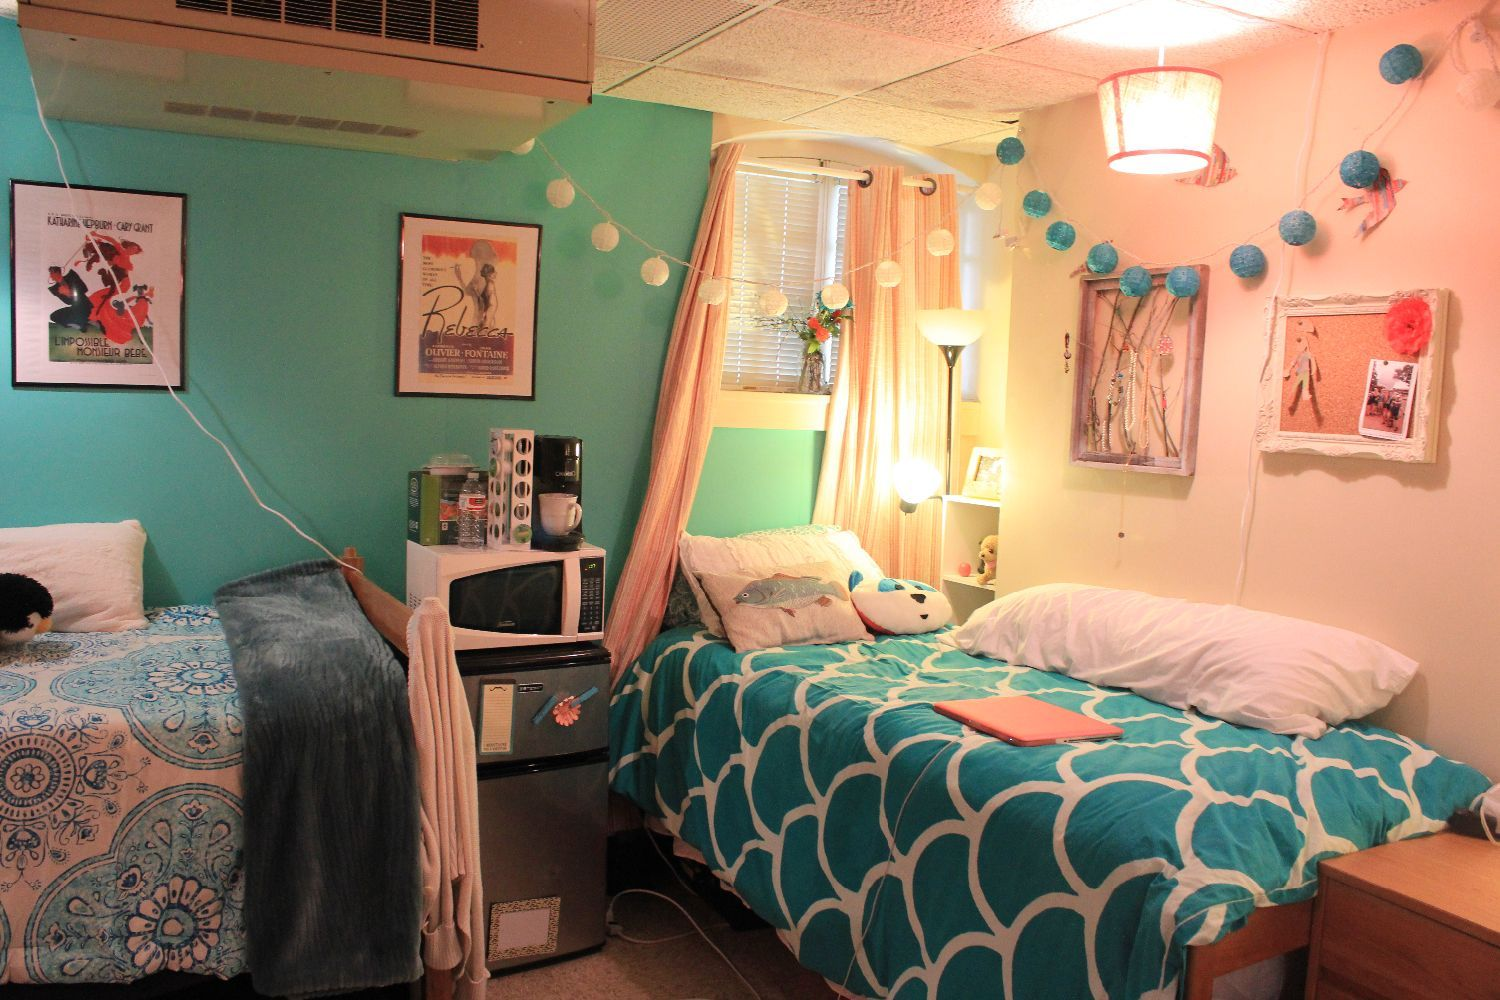 Coral And Teal Dorm Room For More Awesom Girls Dorm Room Ideas